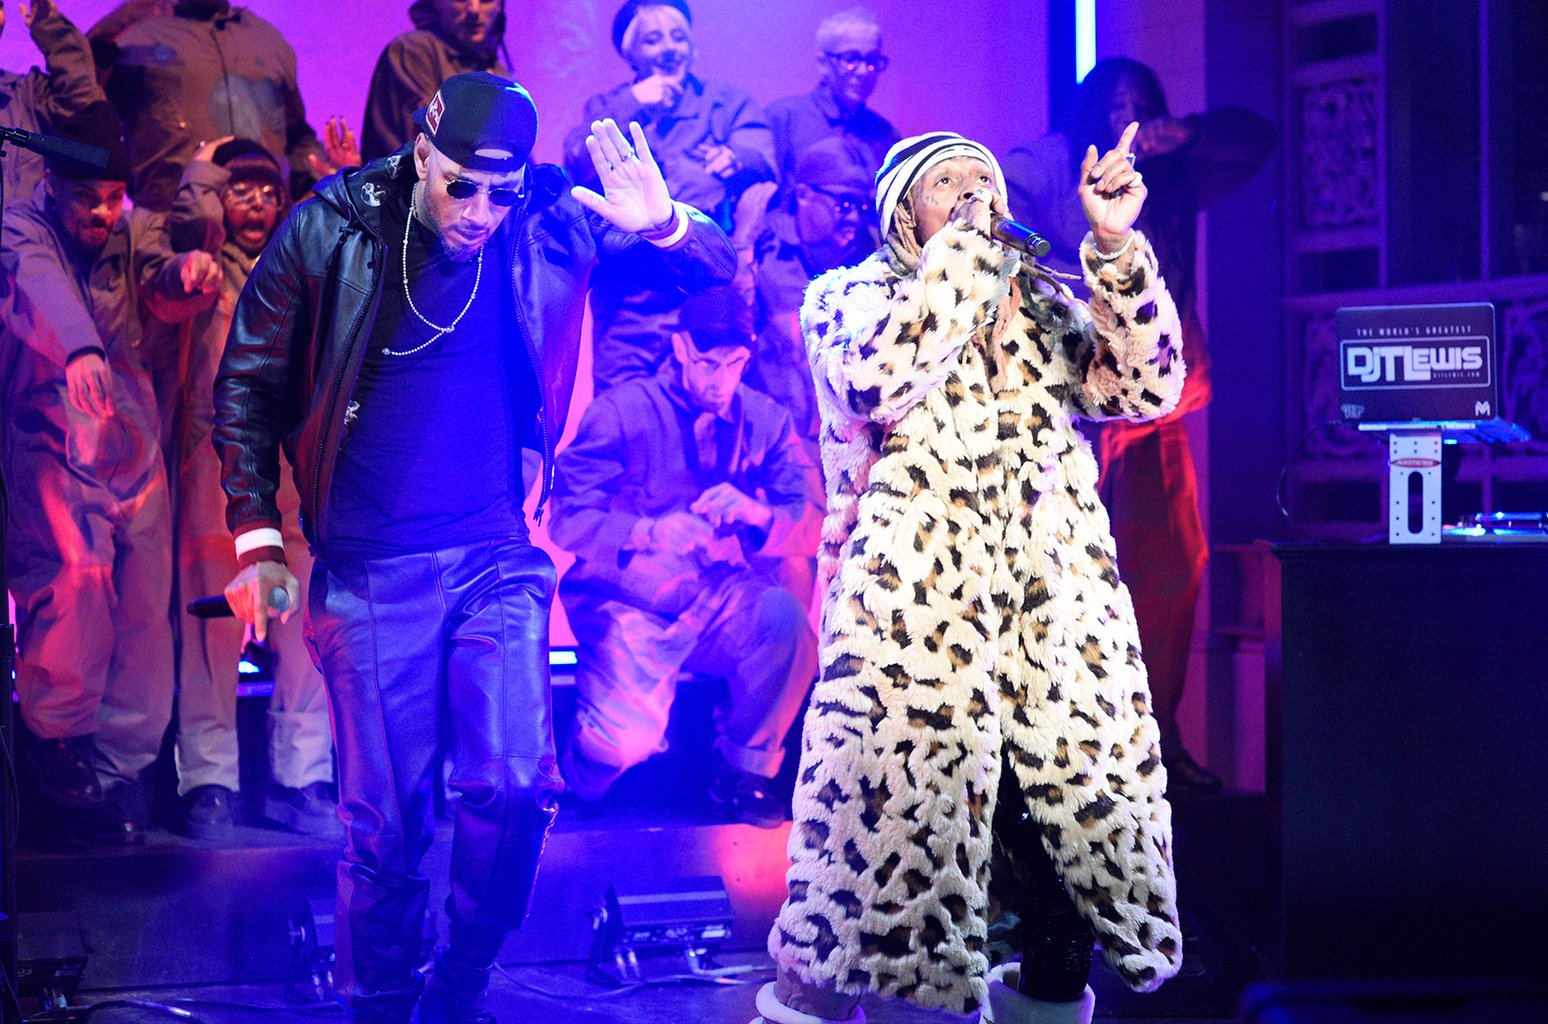 HustleTV.tv- Lil Wayne Swizz Beatz And Halsey Performs Can't Be Broken And Uproar On SNL DJ Hustle